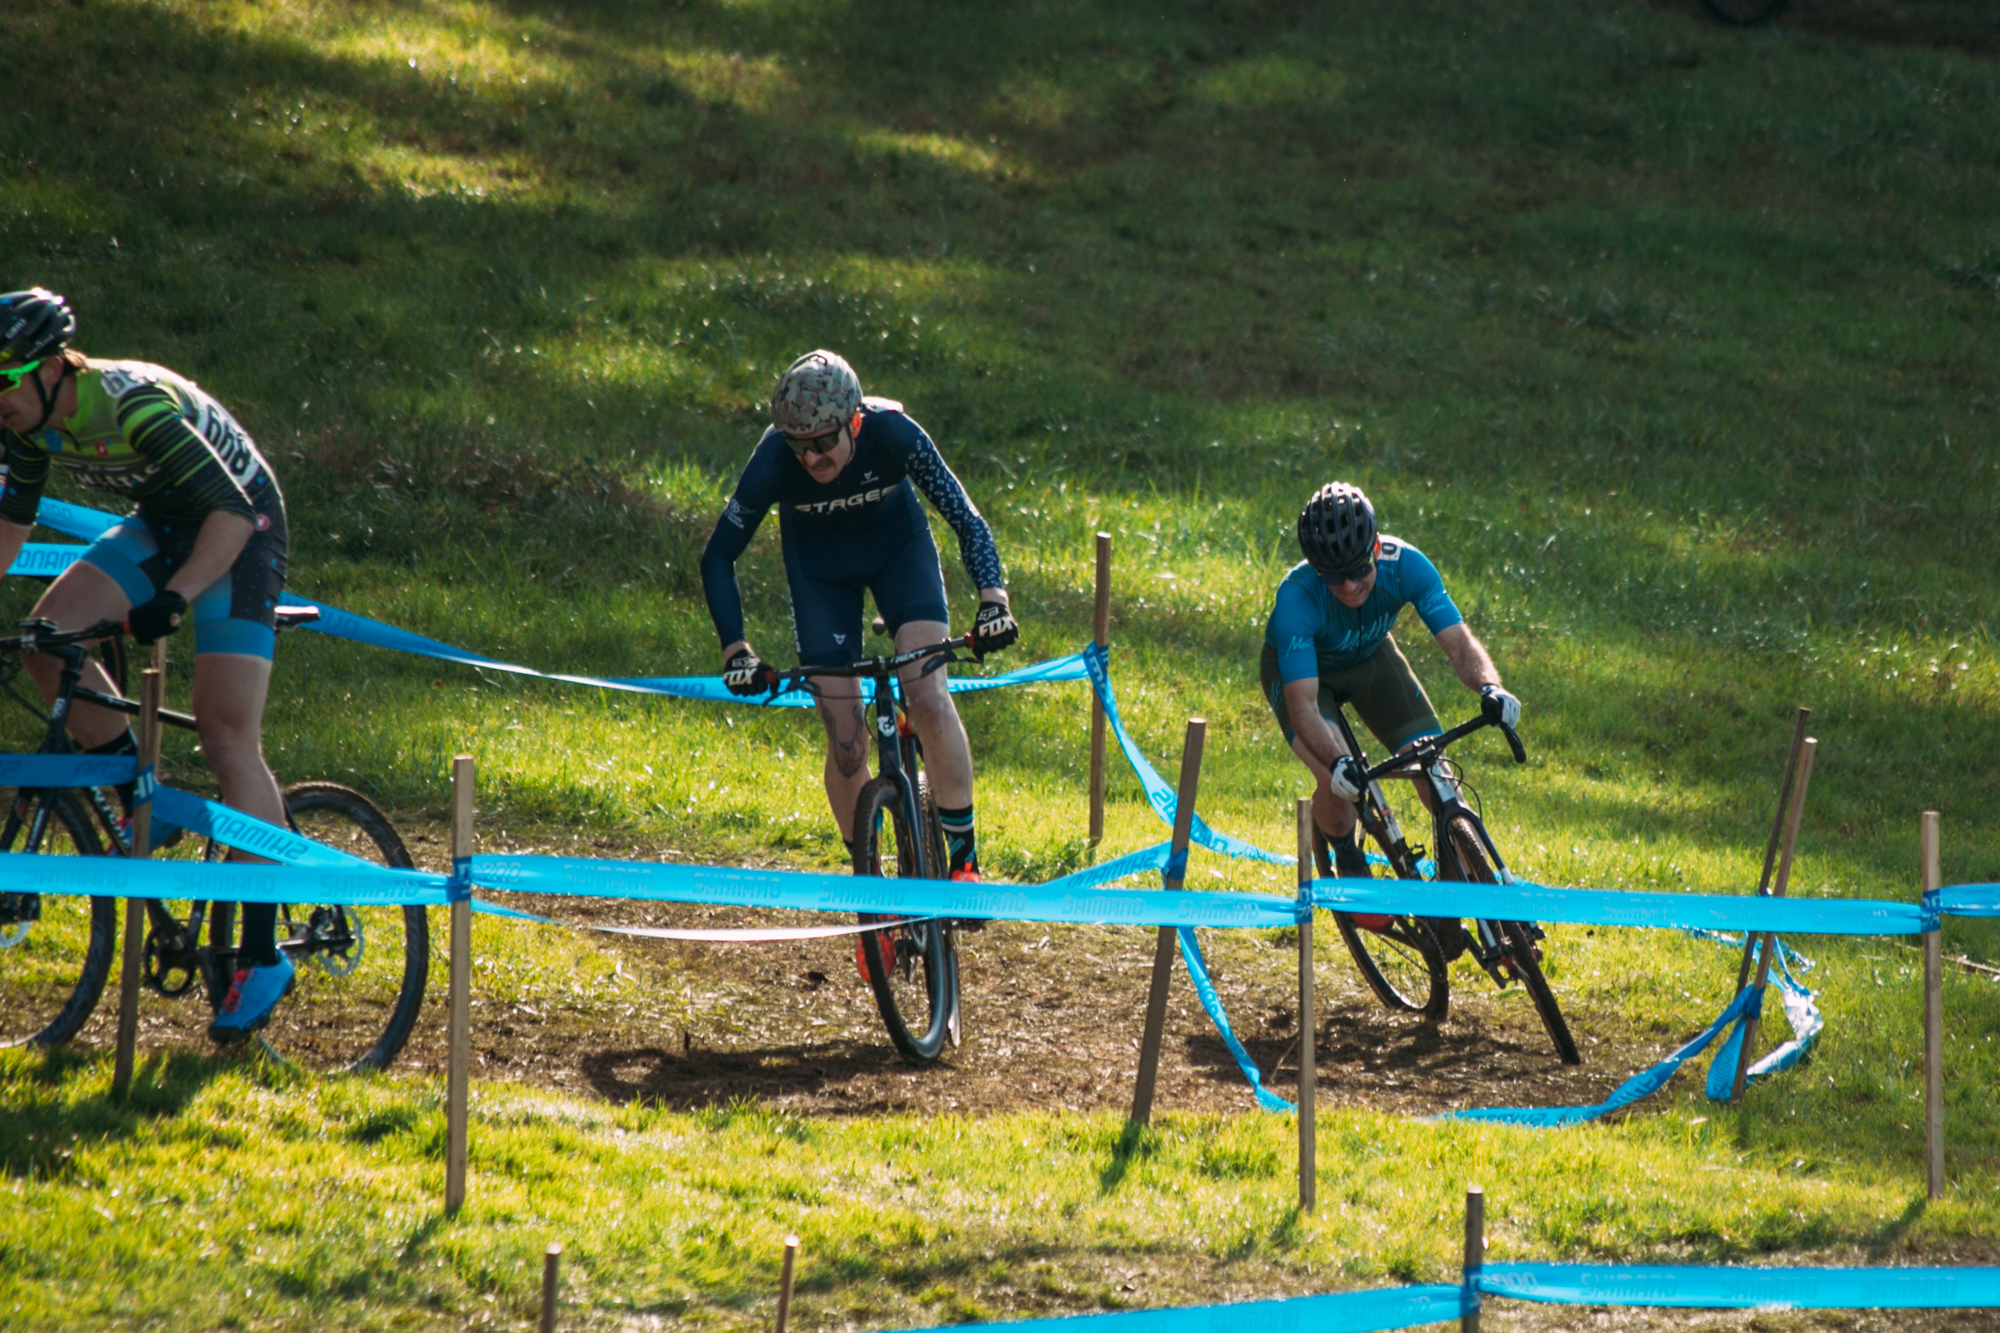 Cyclocross18_CCCX_RainierHS-74-mettlecycling.jpg